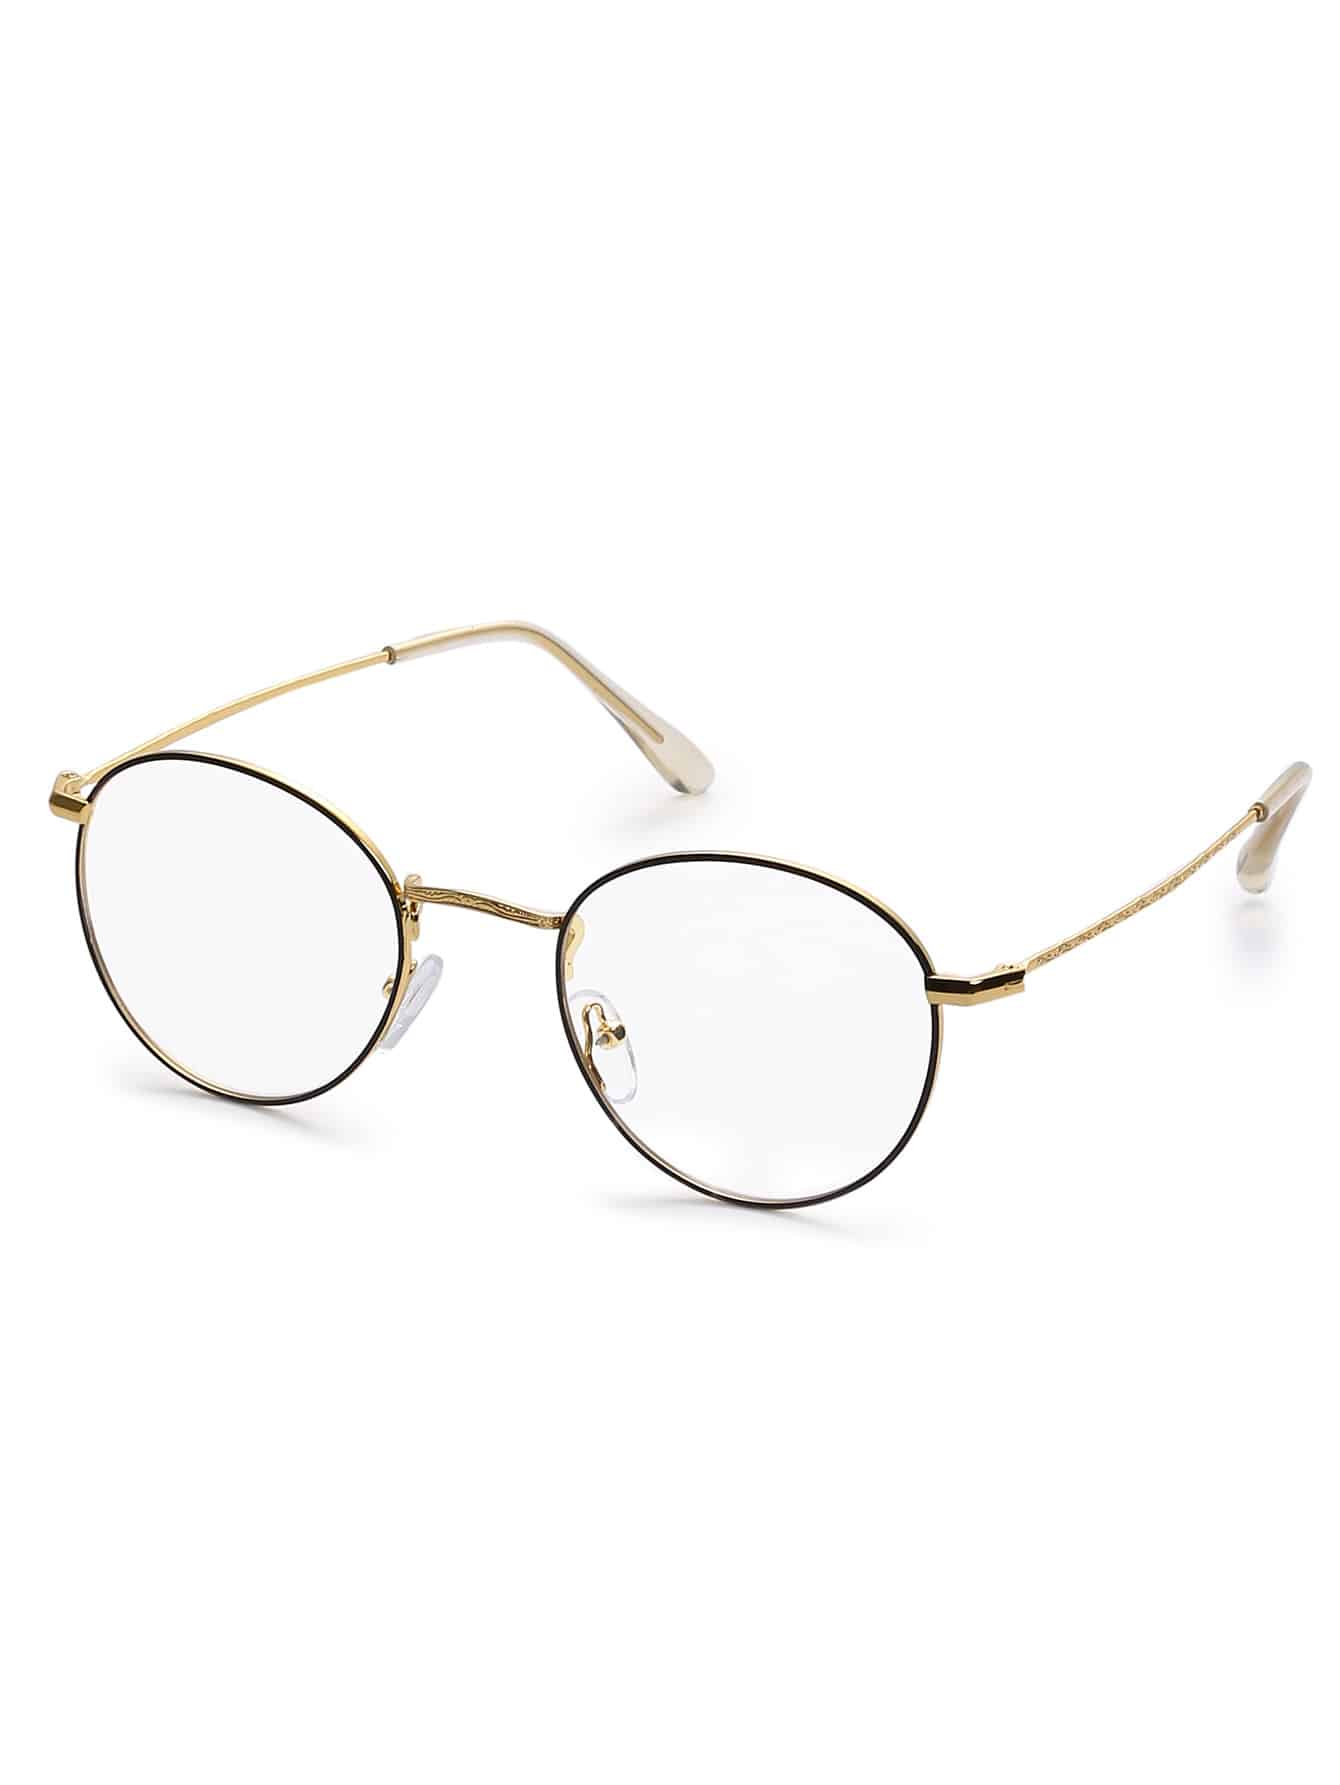 Gold Metal Frame Round Clear Lens Glasses